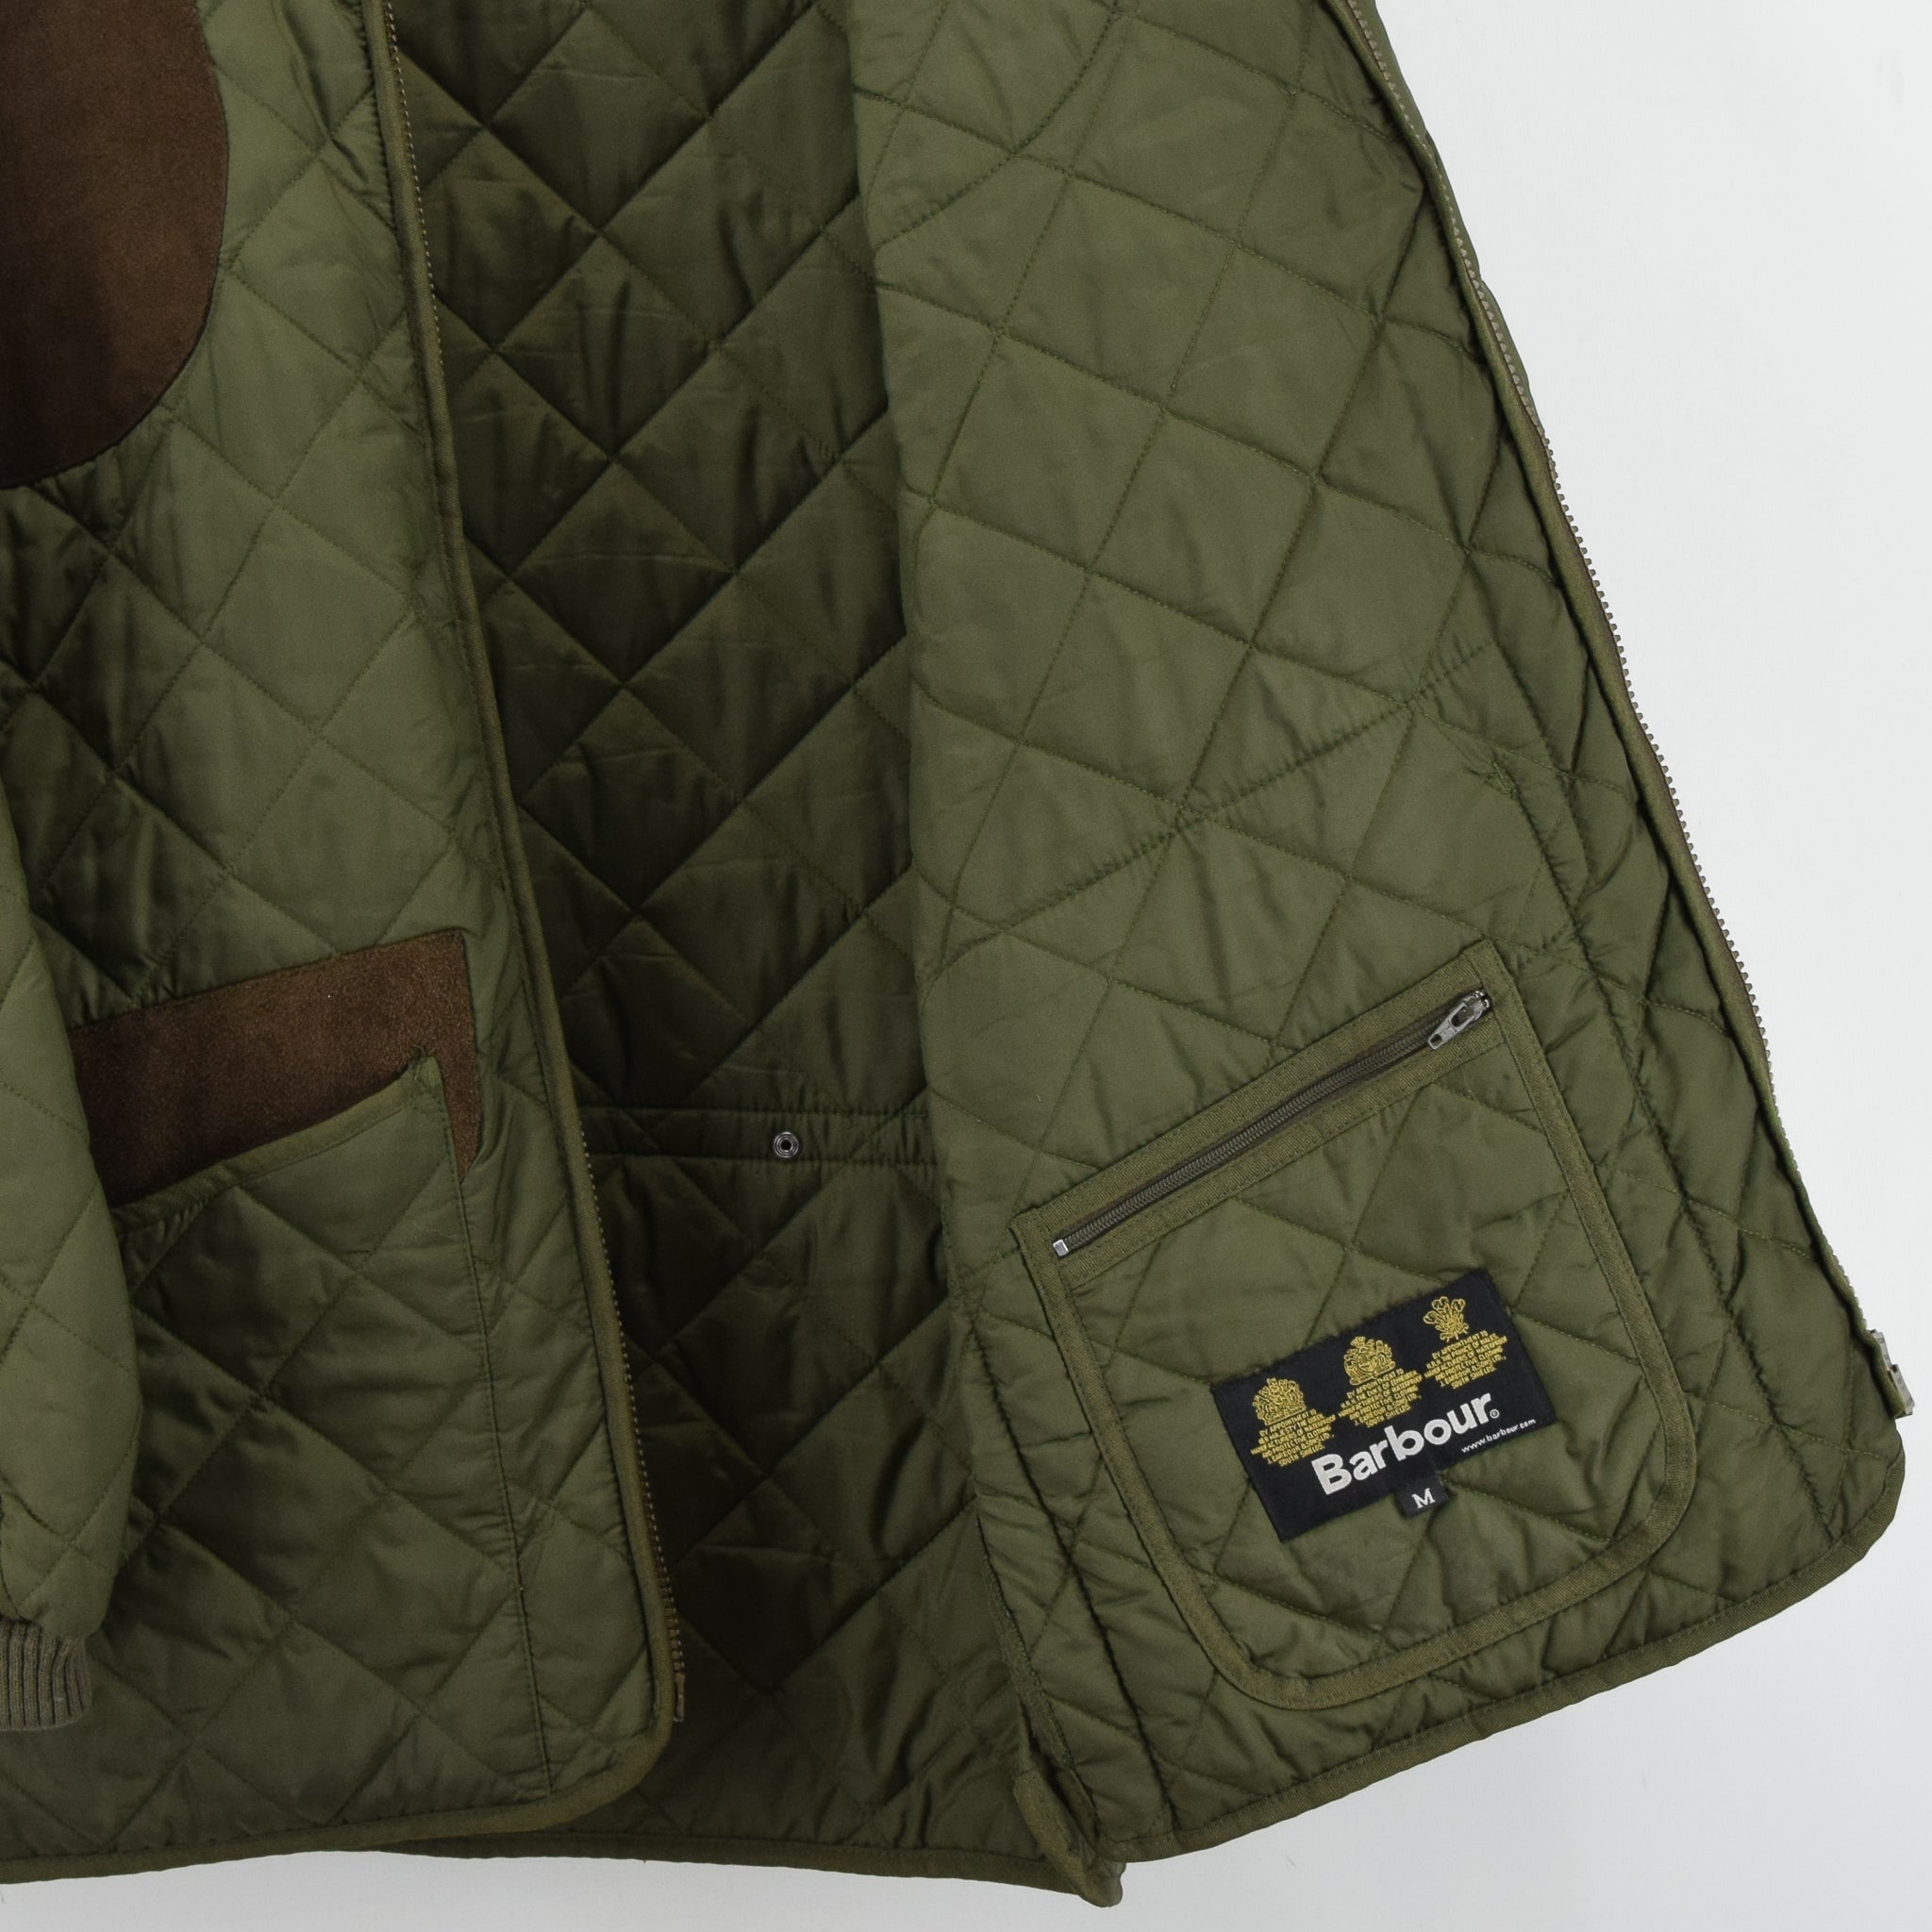 Barbour New Keeperwear Hunting Green Quilted Shooting Jacket Suede Patches M internal pocket